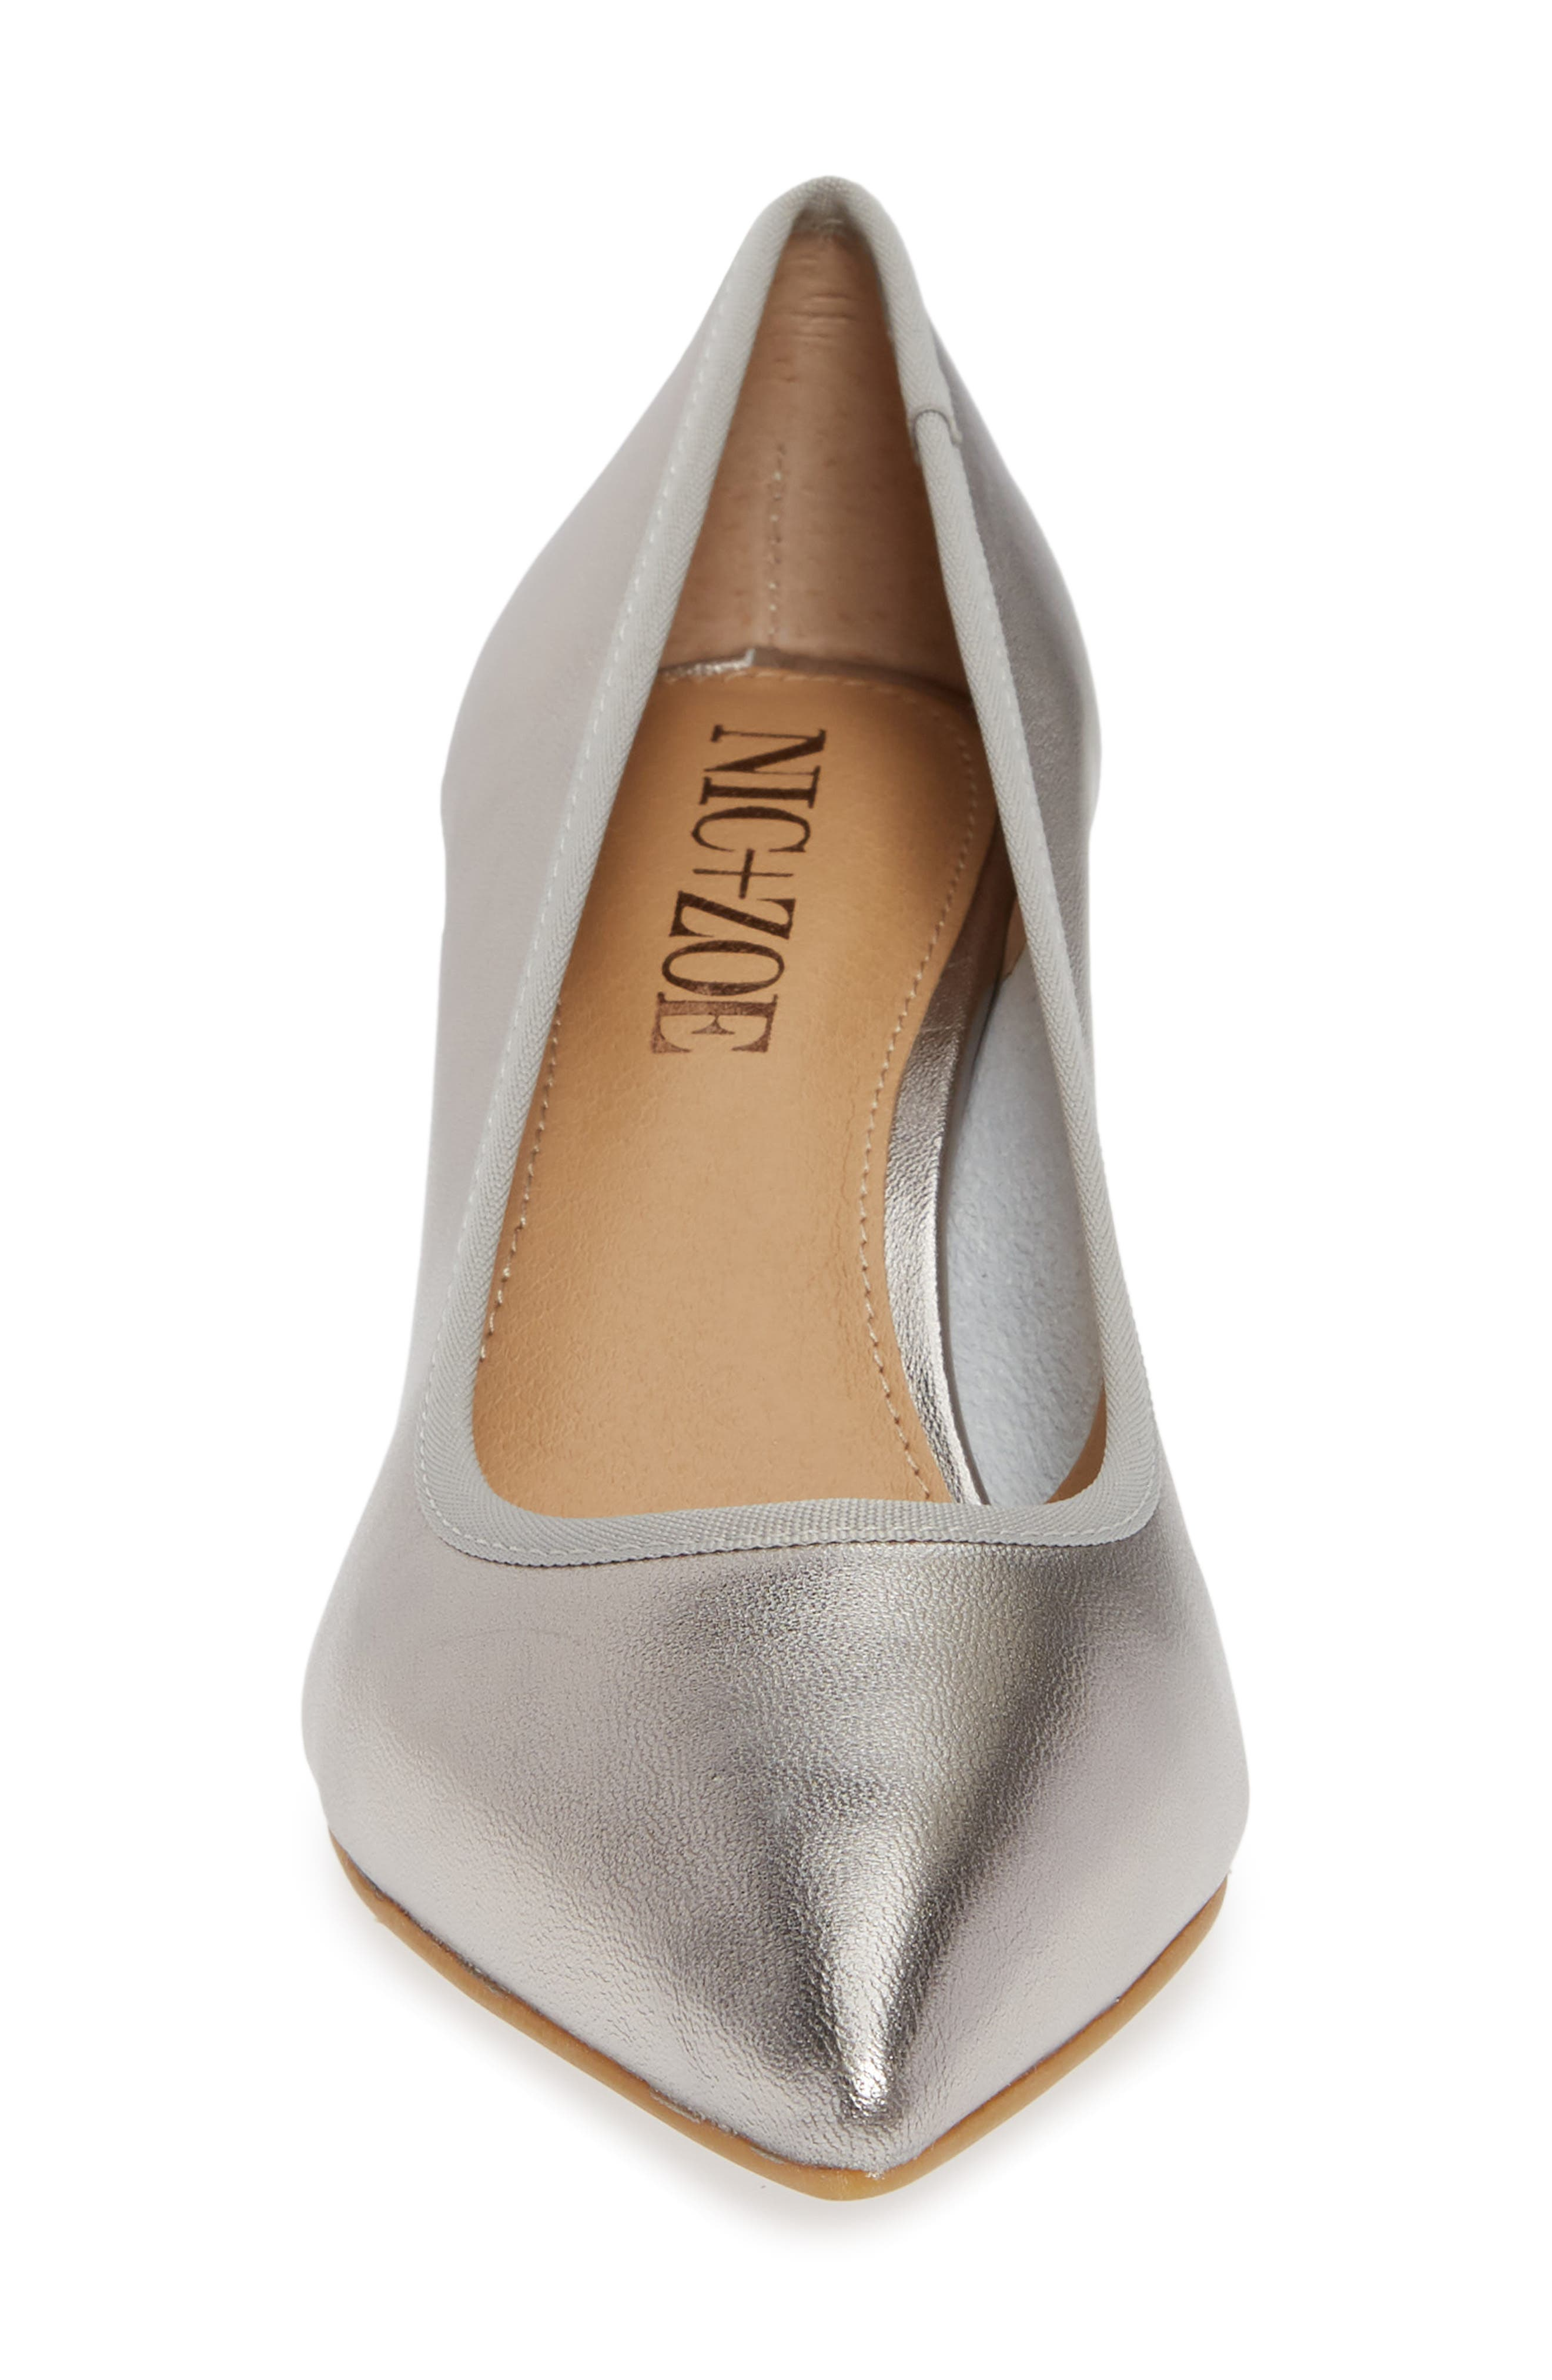 NIC + ZOE Cora Pointy Toe Pump,                             Alternate thumbnail 4, color,                             PEWTER LEATHER